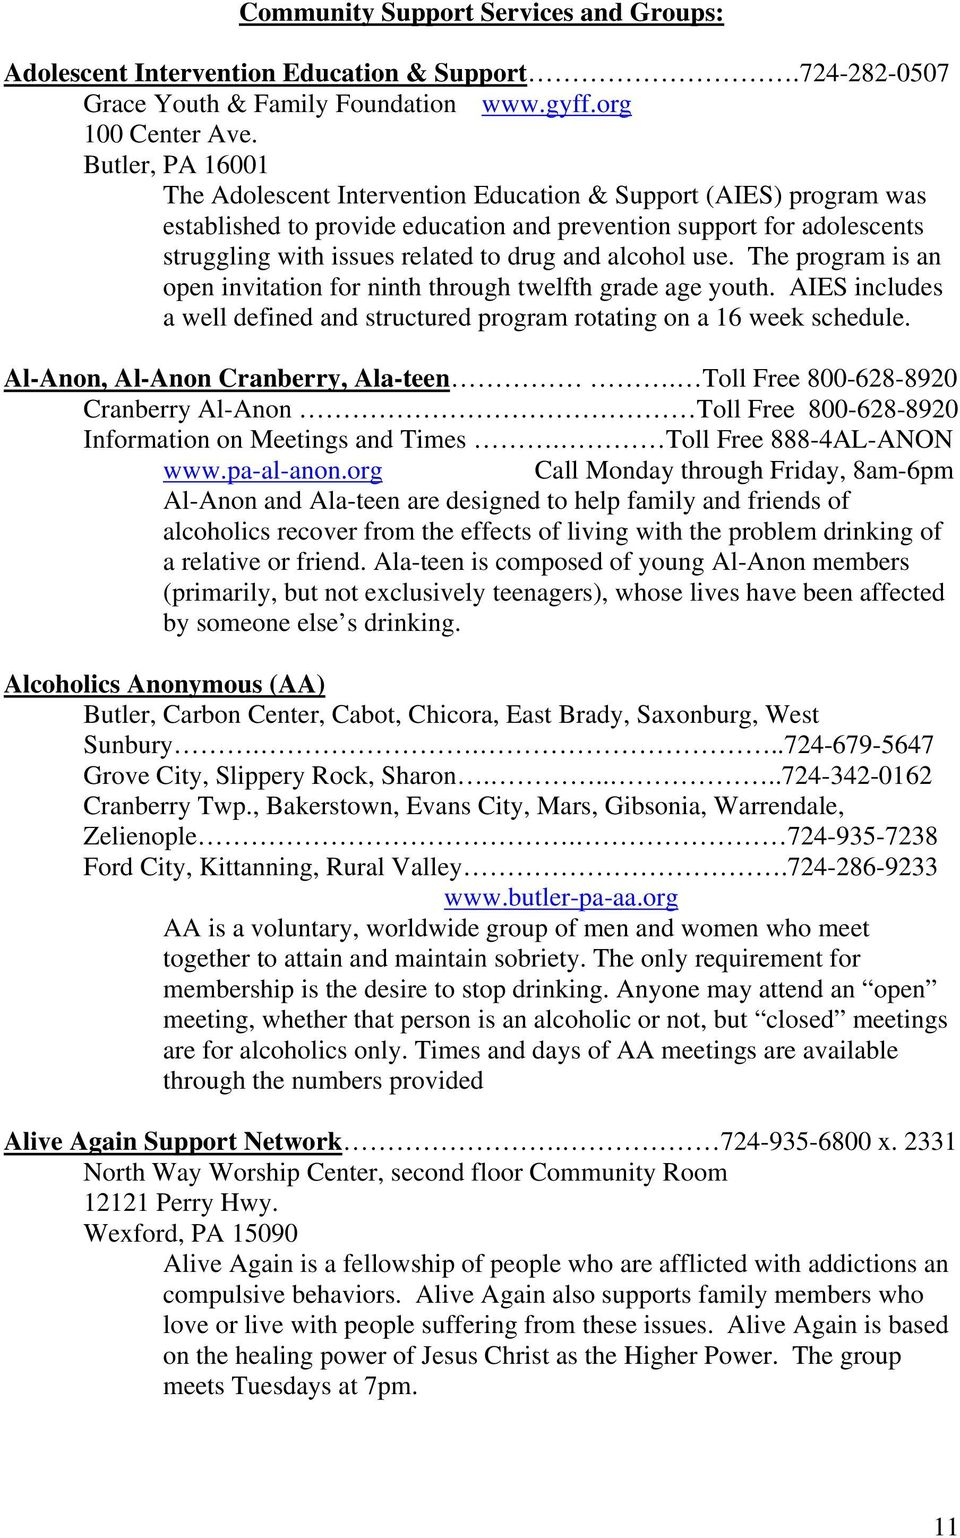 alcohol use. The program is an open invitation for ninth through twelfth grade age youth. AIES includes a well defined and structured program rotating on a 16 week schedule.